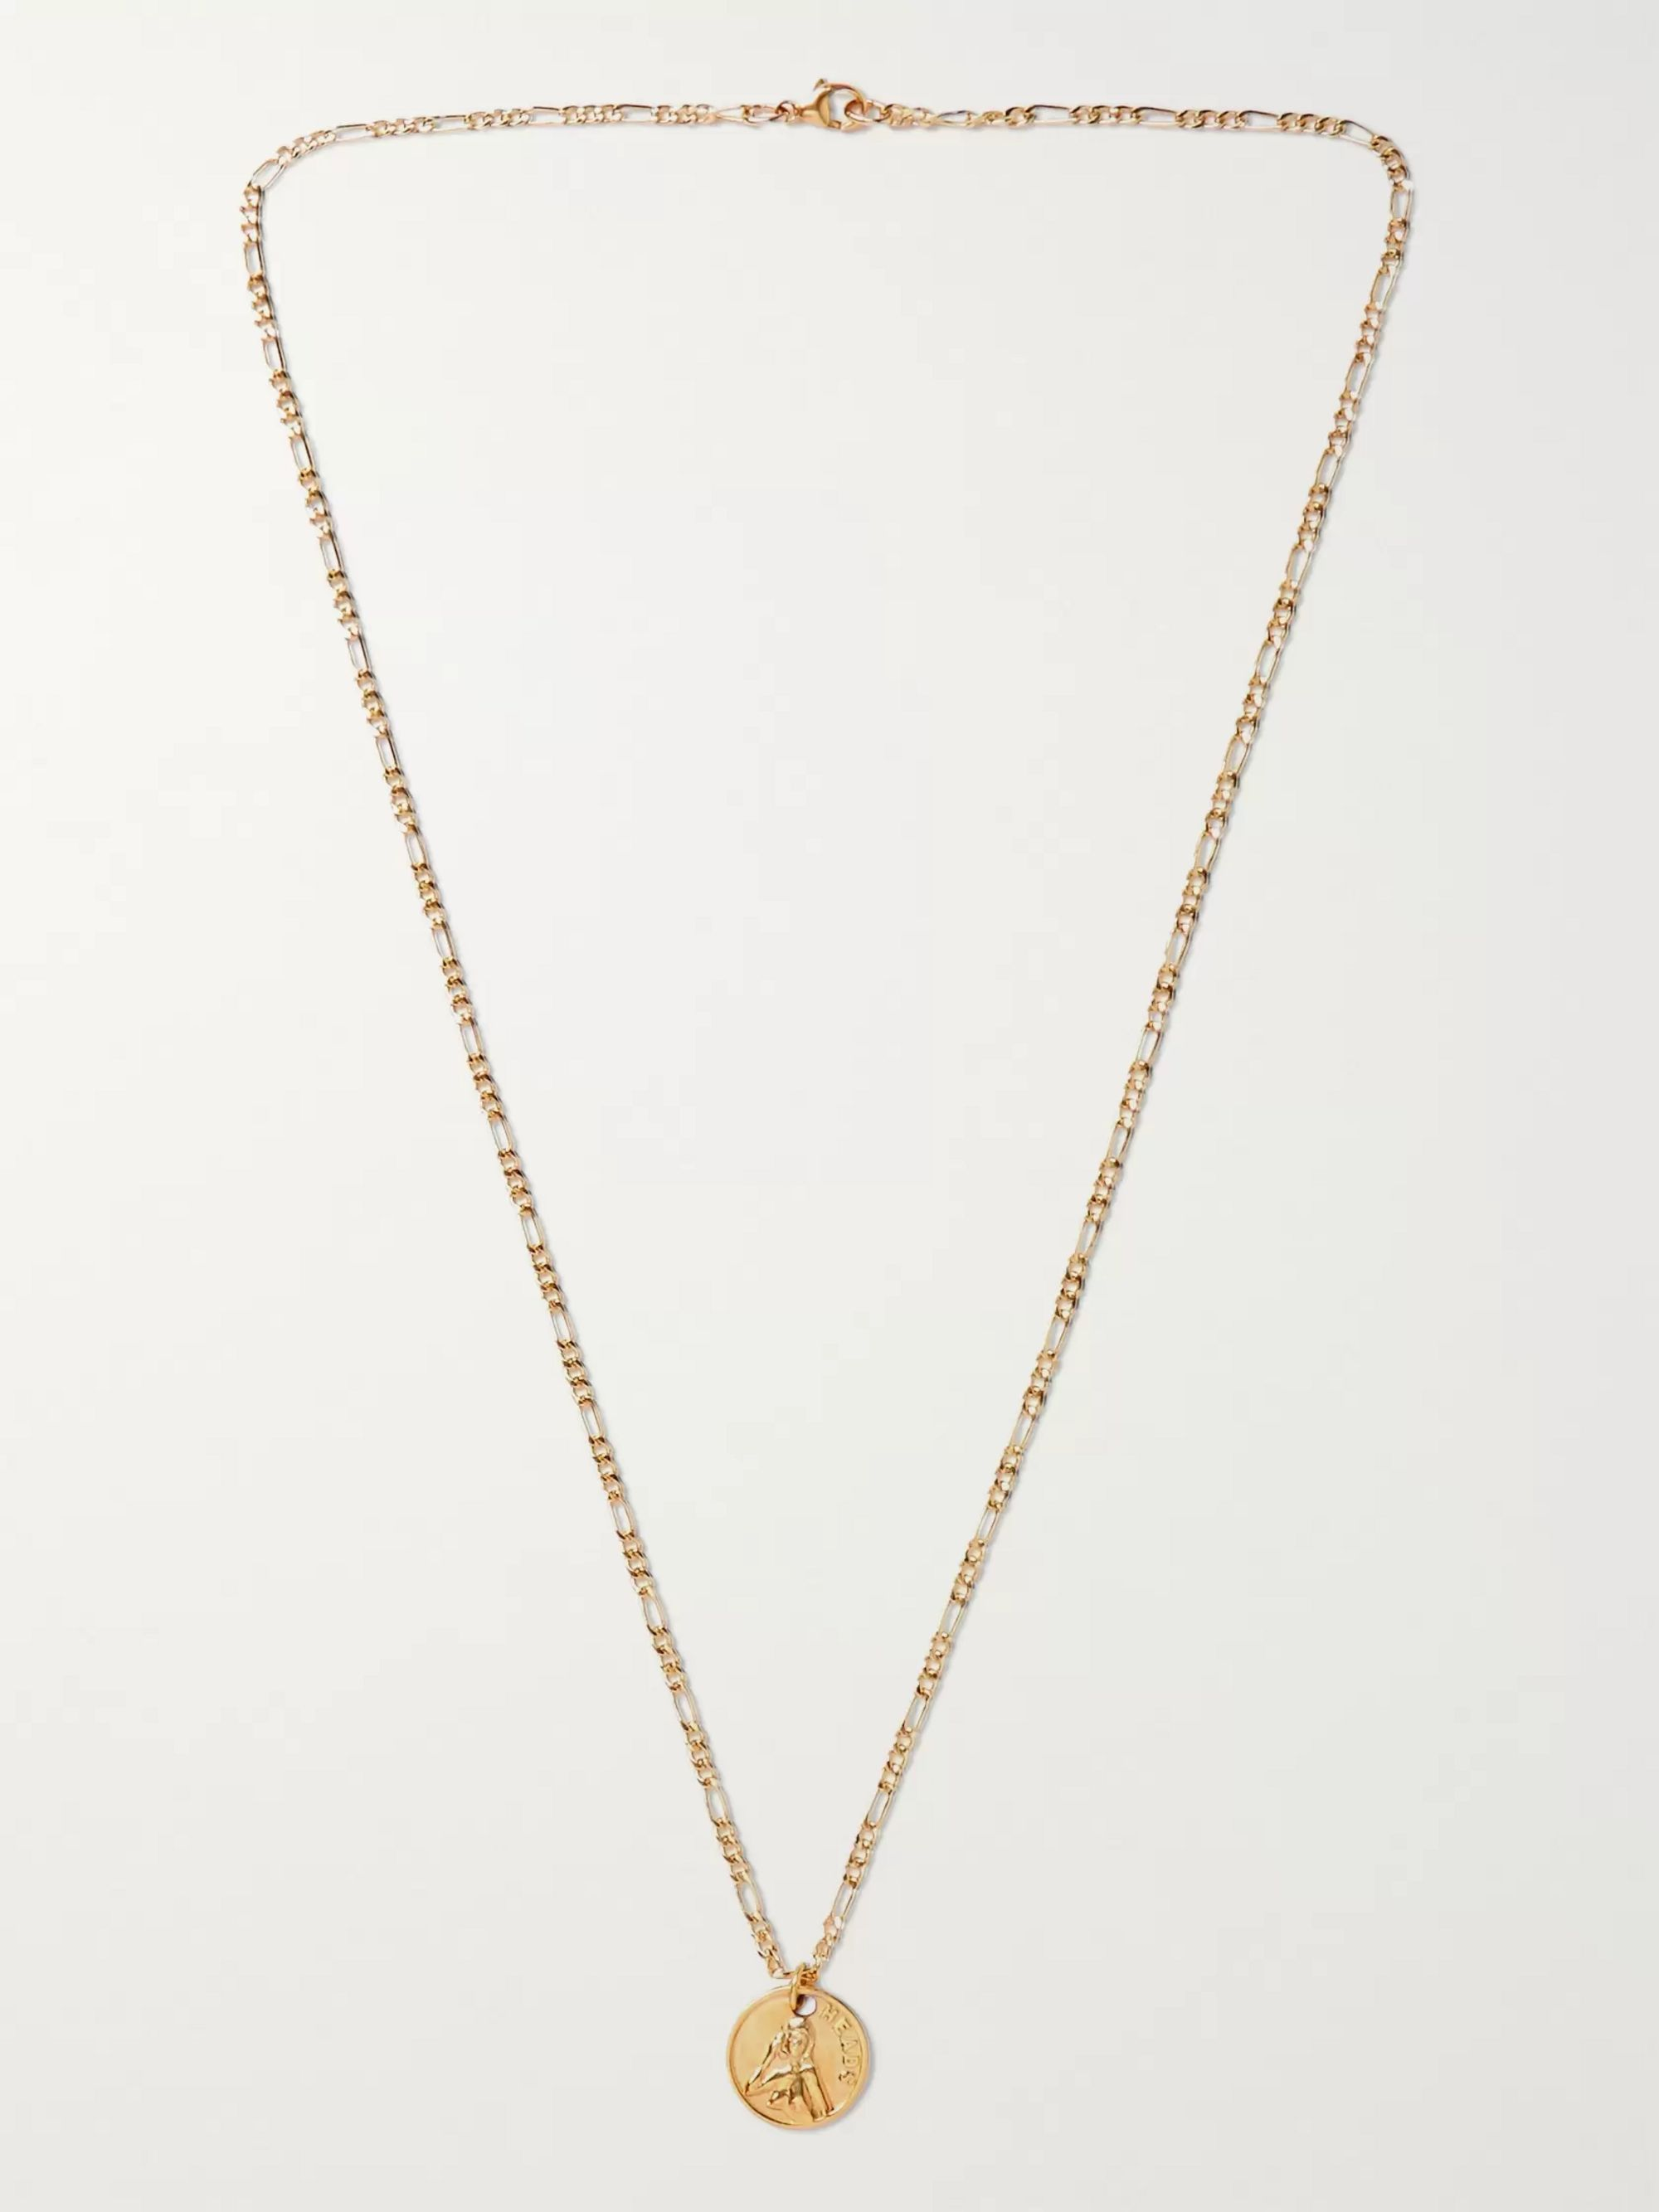 MAPLE Freaky Tails Engraved 14-Karat Gold-Filled Necklace